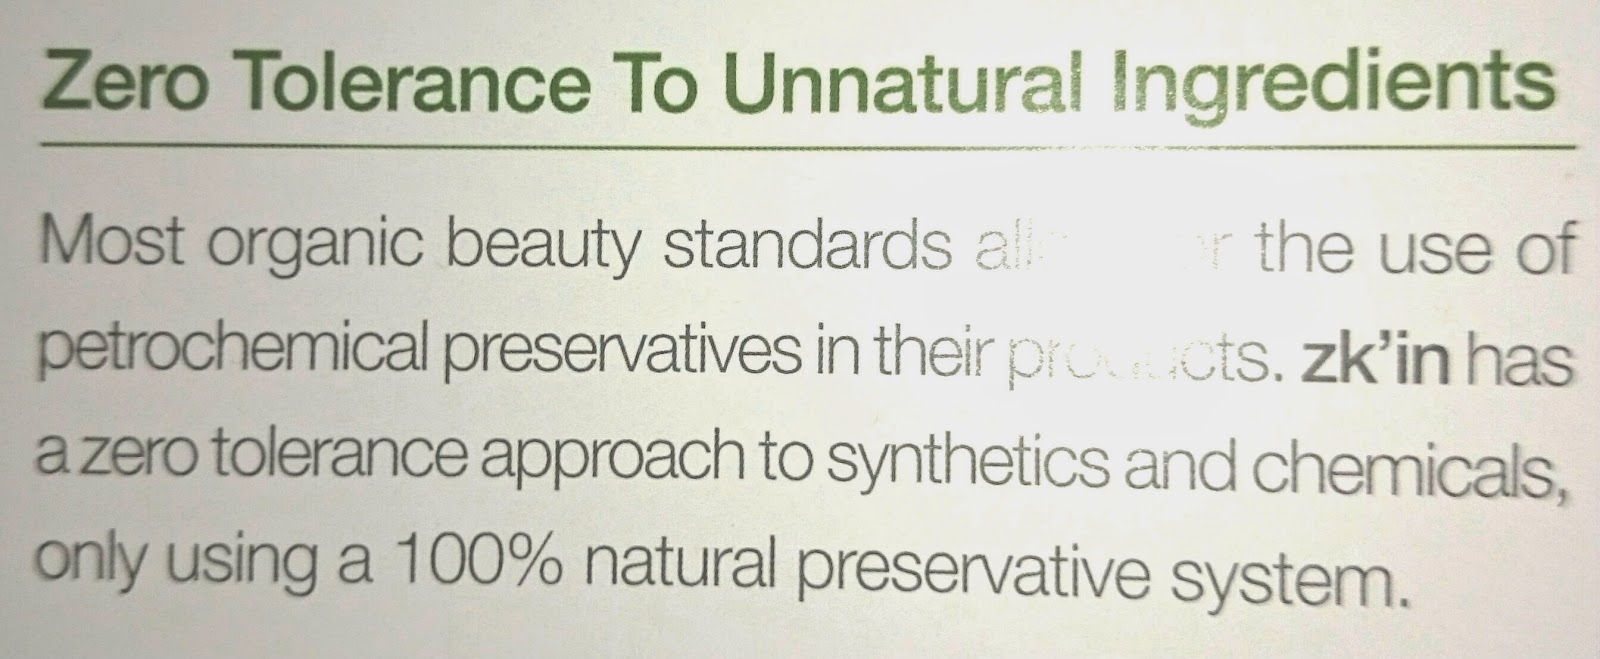 Zero Tolerance To Unnatural Ingredients. Most organic beauty standards allow for the use of petrochemical preservatives in their products, zk'in has a zero tolerance approach to synthetics and chemicals, only using a 100% natural preservative system.